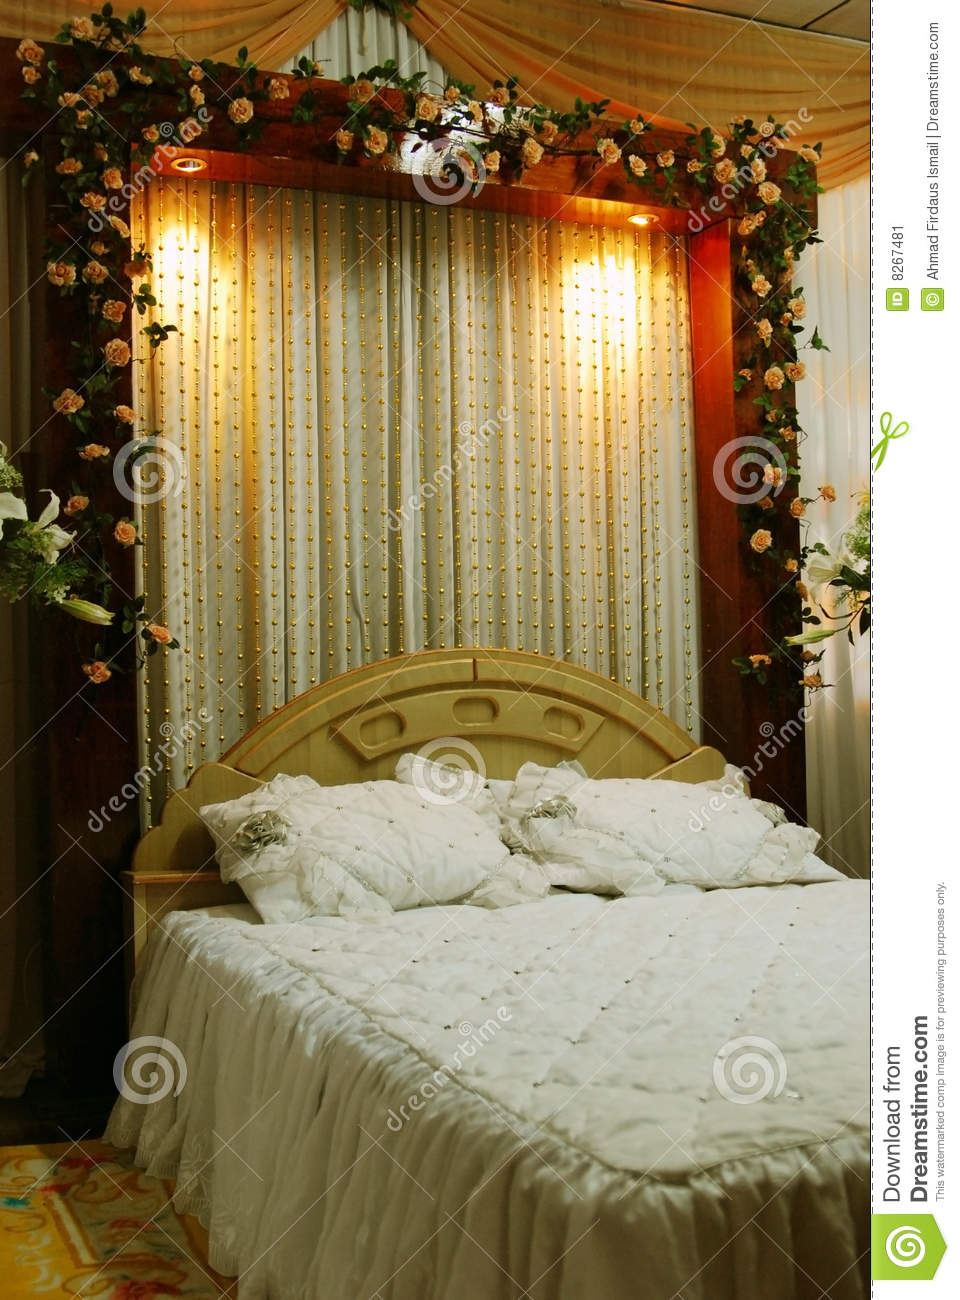 Wedding Bed Decoration. Wedding Bed Decoration stock image  Image of banquet  environment